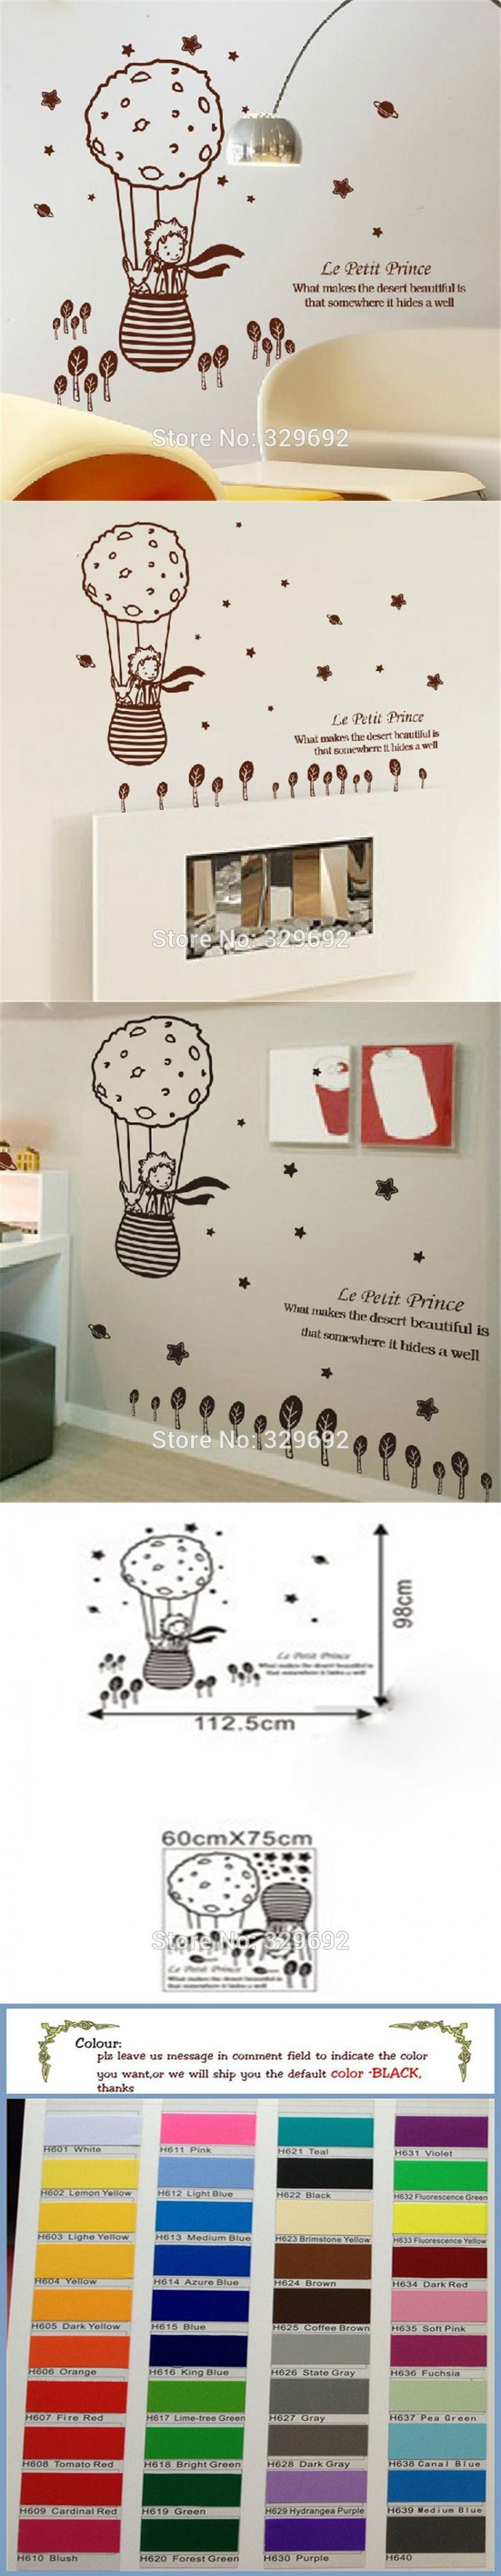 cute creative big size 112.5 x 98 cm for kids rooms little prince and the fox Removable wall stickers home decoration tx-506  $10.89